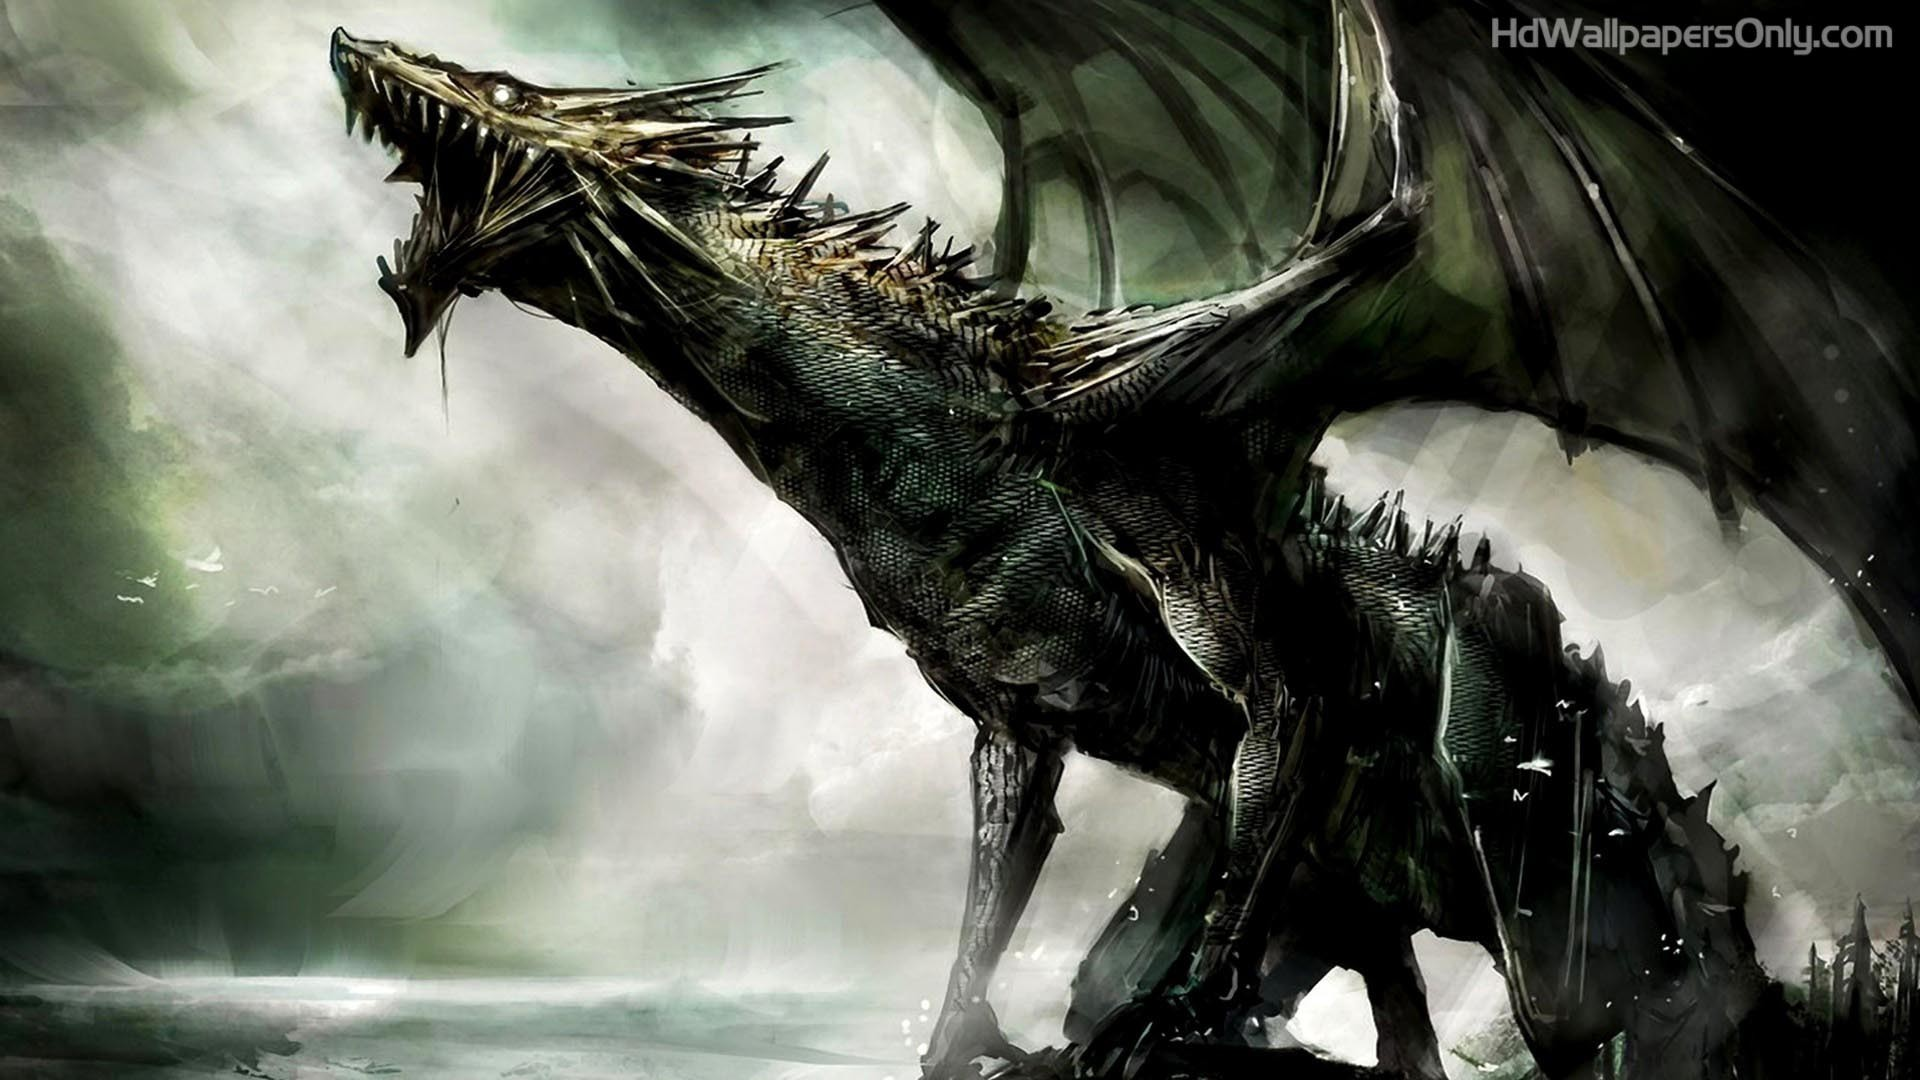 1920x1080 Black Dragon HD Wallpaper | 4hotos